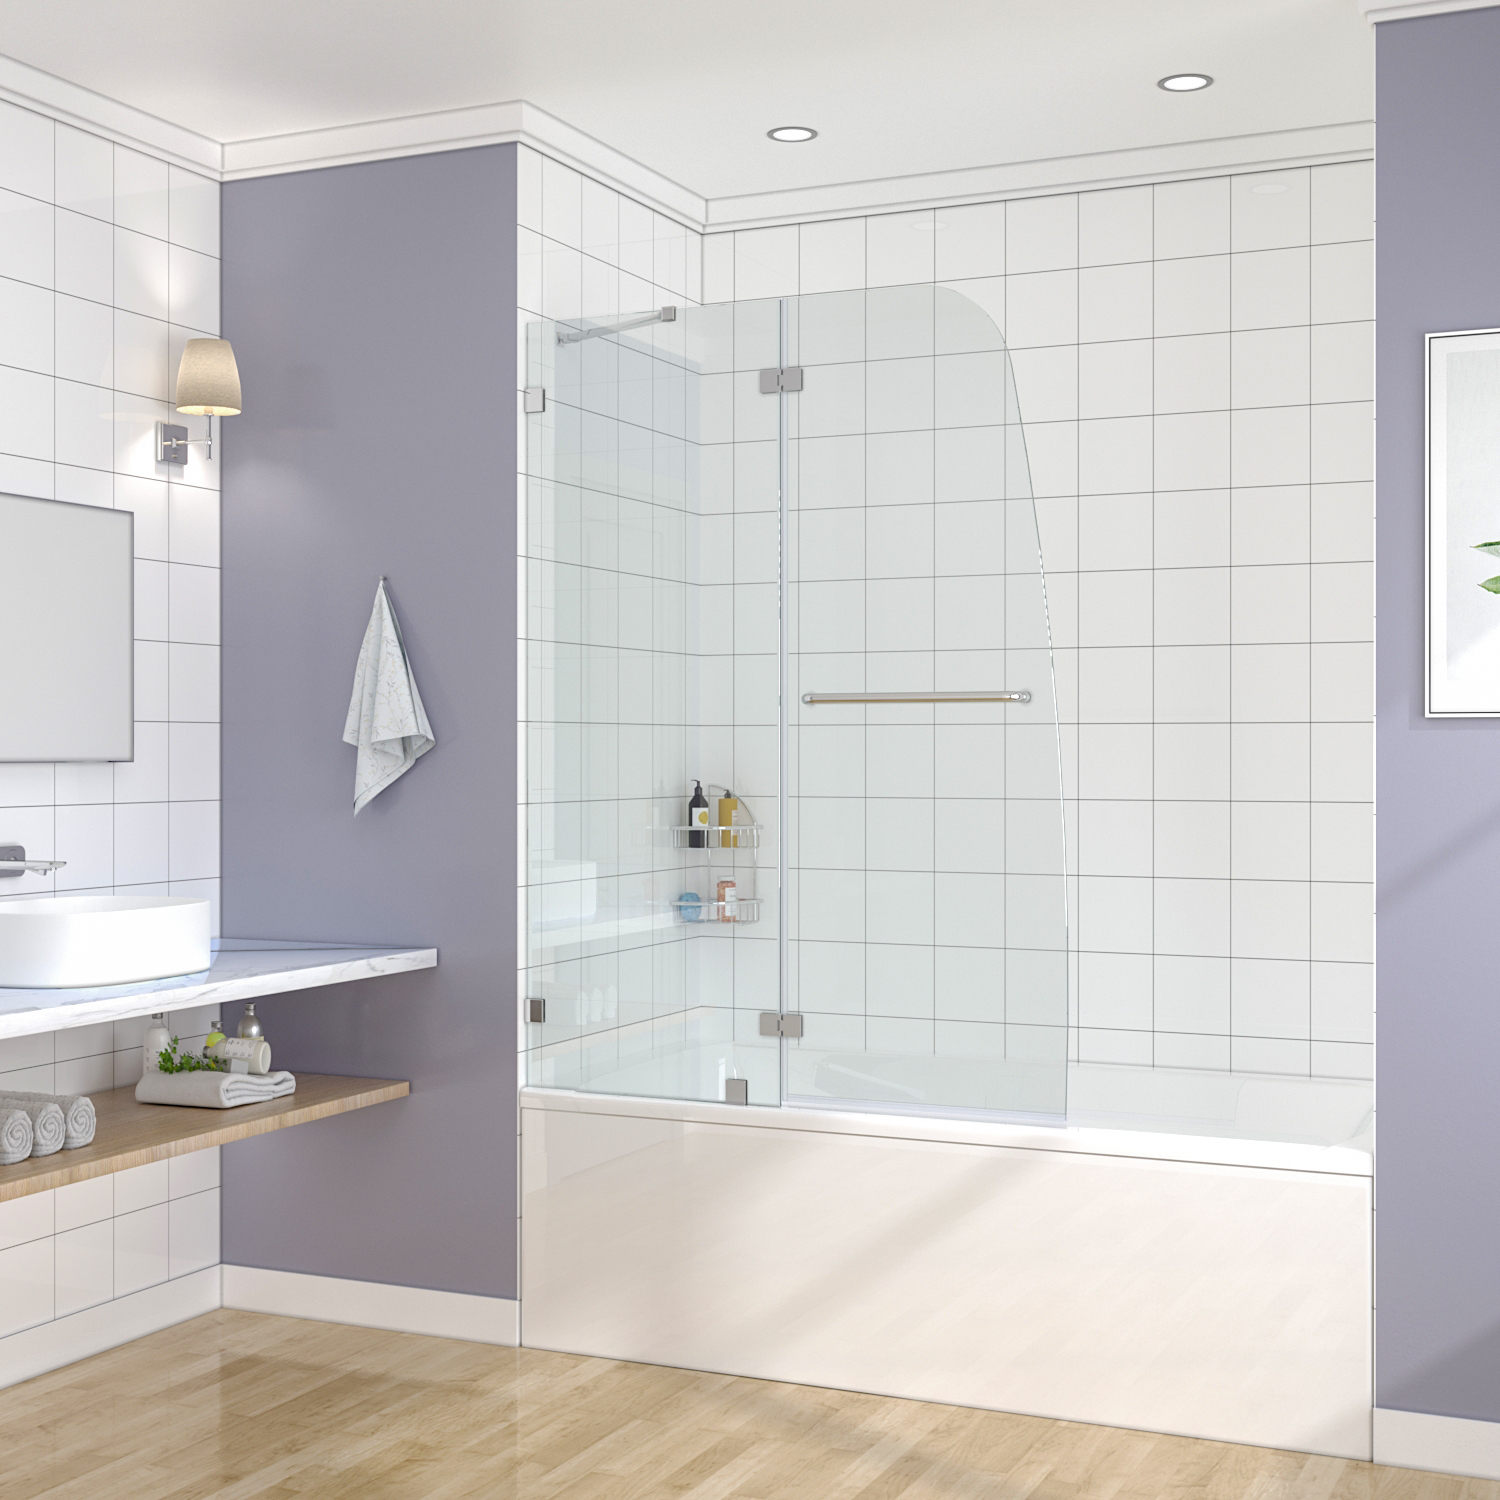 Details About Sunny Shower Frameless Hinged Tub Doors 48 In With 5 16 In Clear Glass Chrome